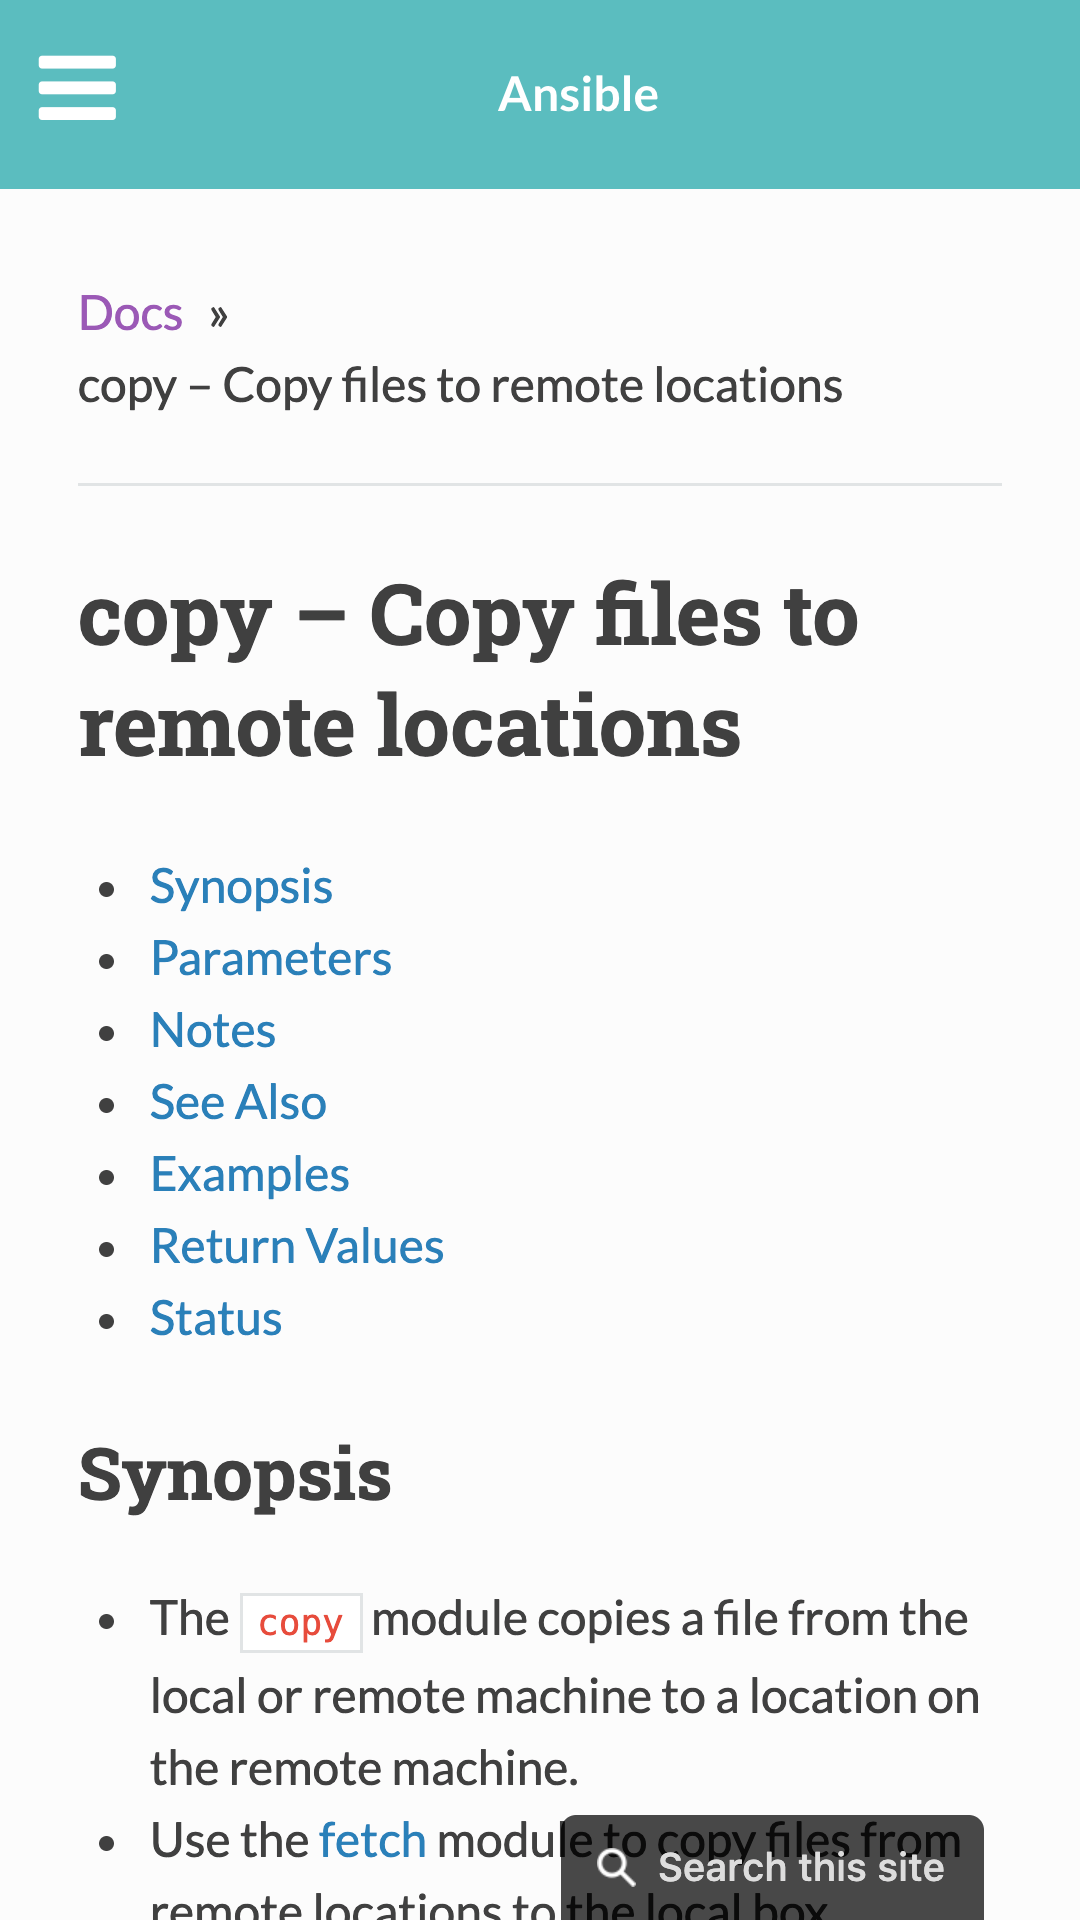 Ansible docs for 'copy' module, mobile UI. Table of contents, and synopsis, with a search button.